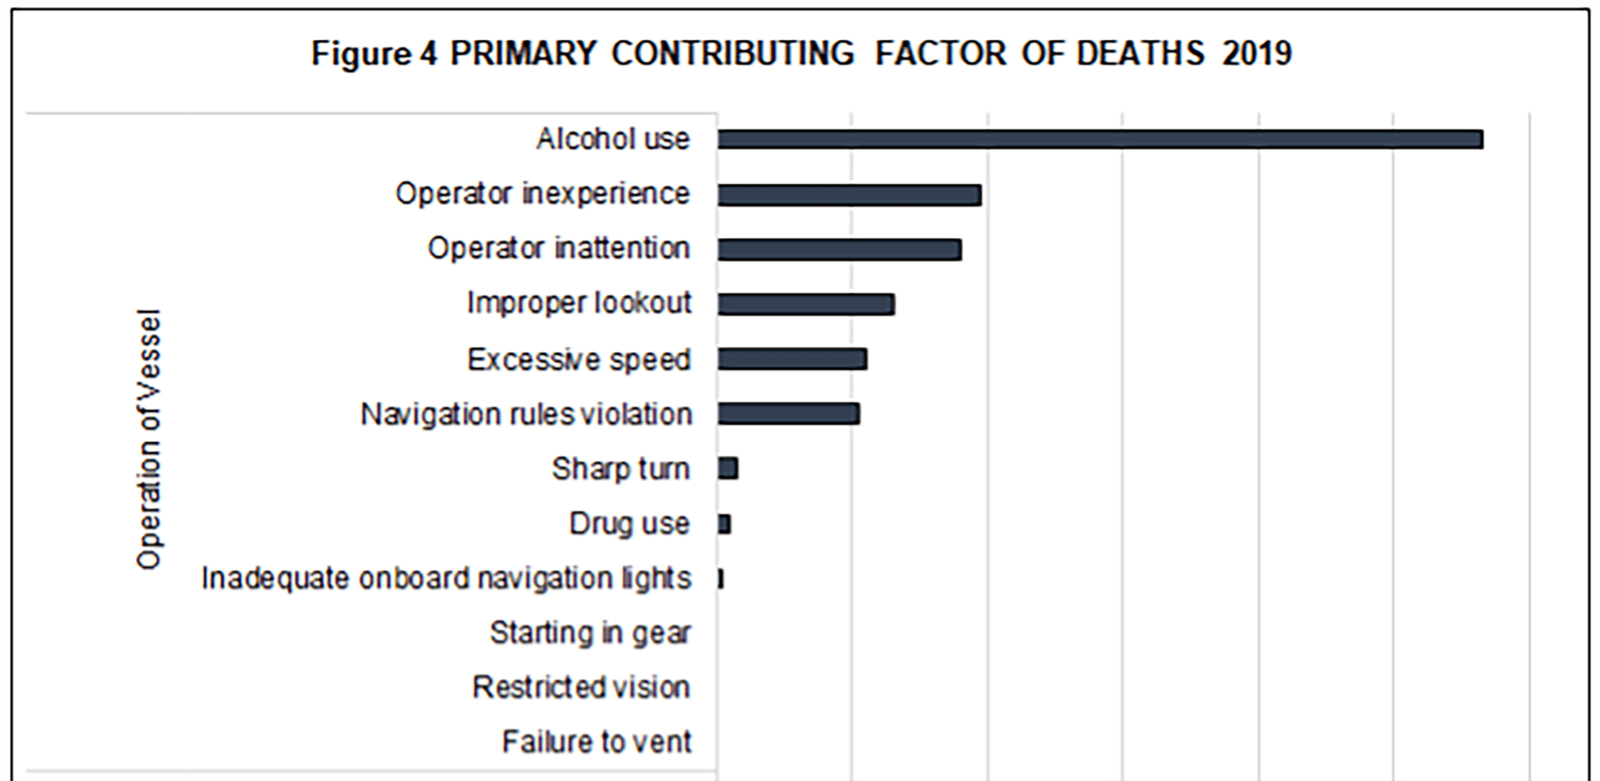 Primary contributing factors of fatal boat accidents in 2019